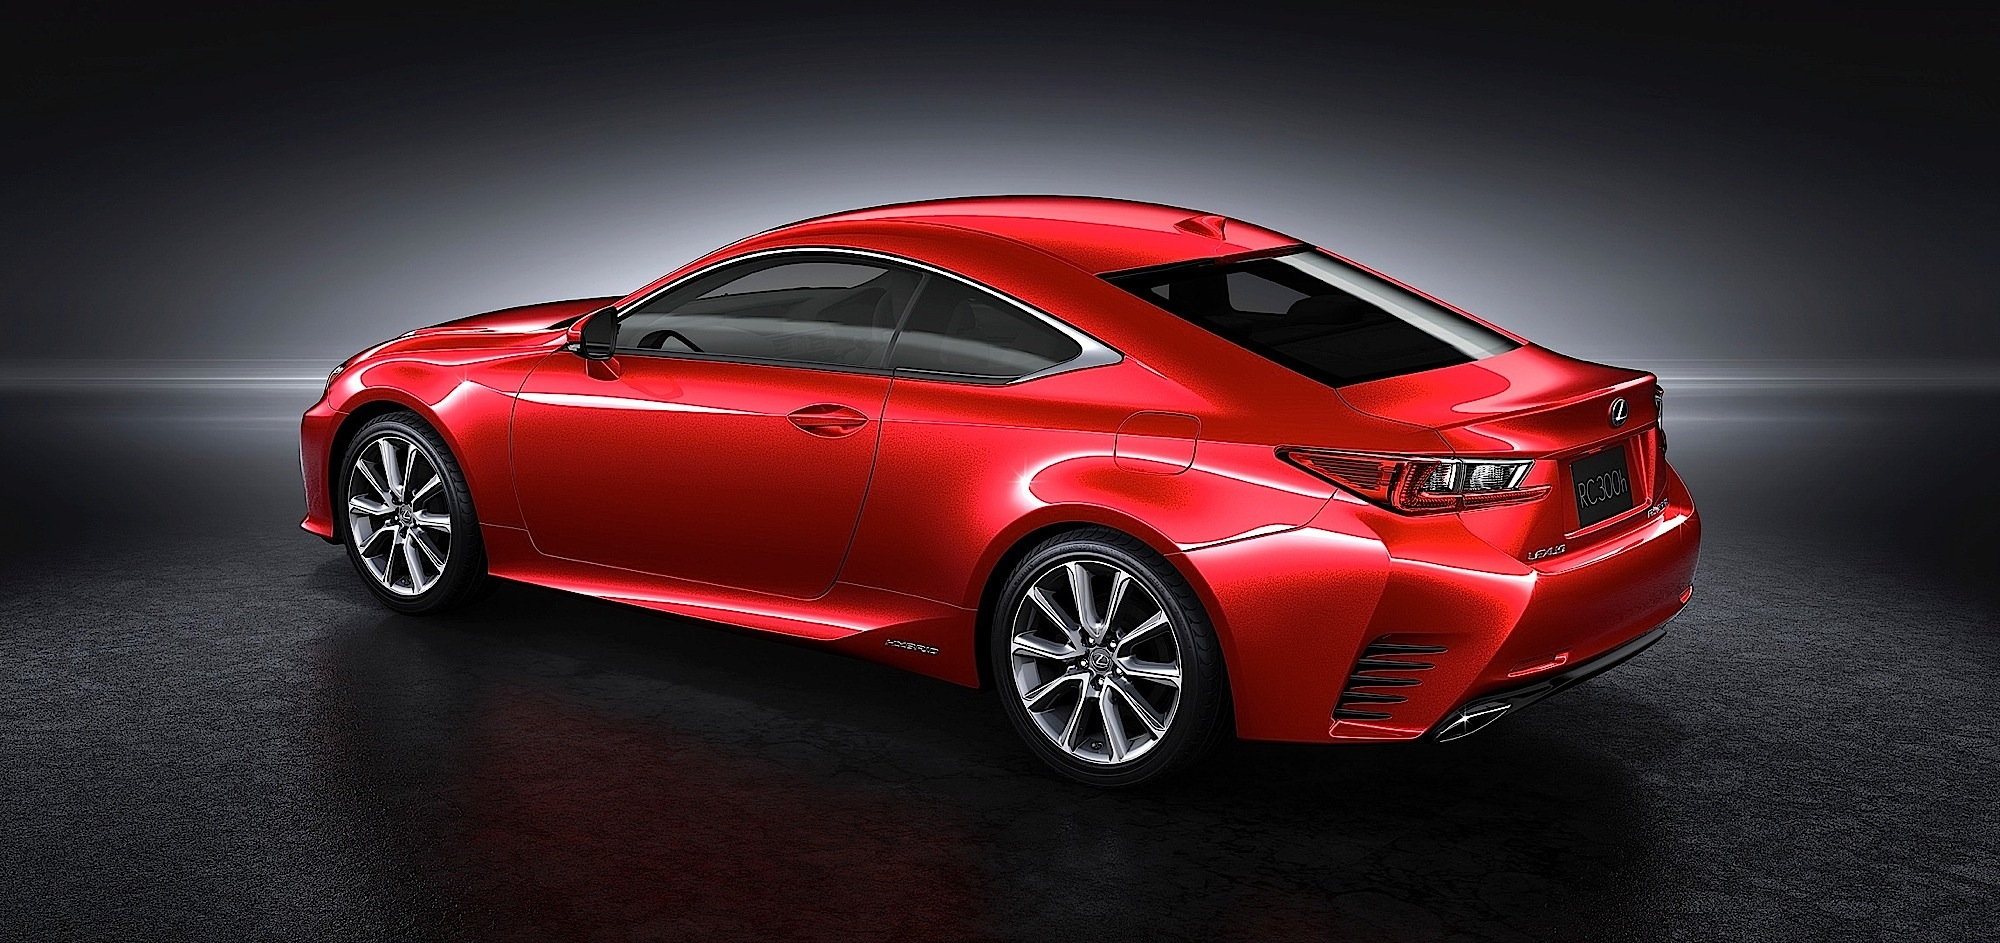 Lexus Is 350 >> Lexus Unveils RC Sports Coupe at 2013 Tokyo Show - autoevolution